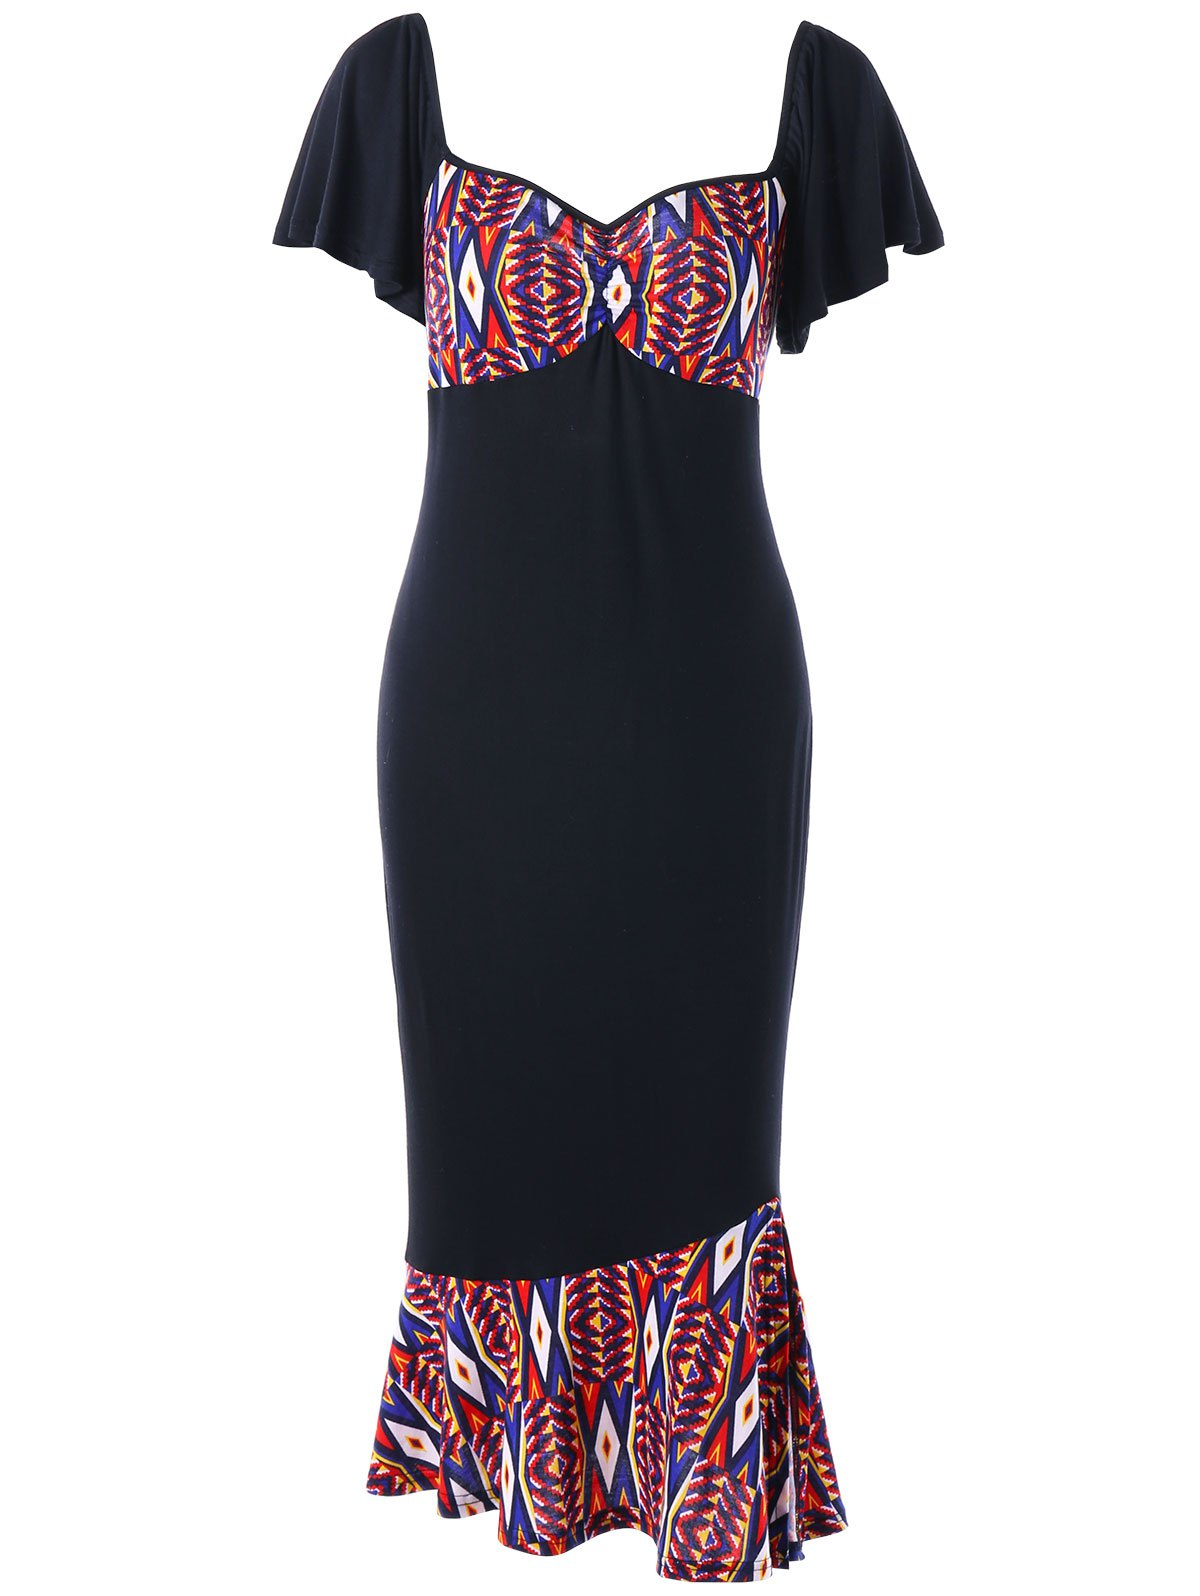 Printed Plus Size Bodycon Fishtail Dress printed plus size bodycon fishtail dress